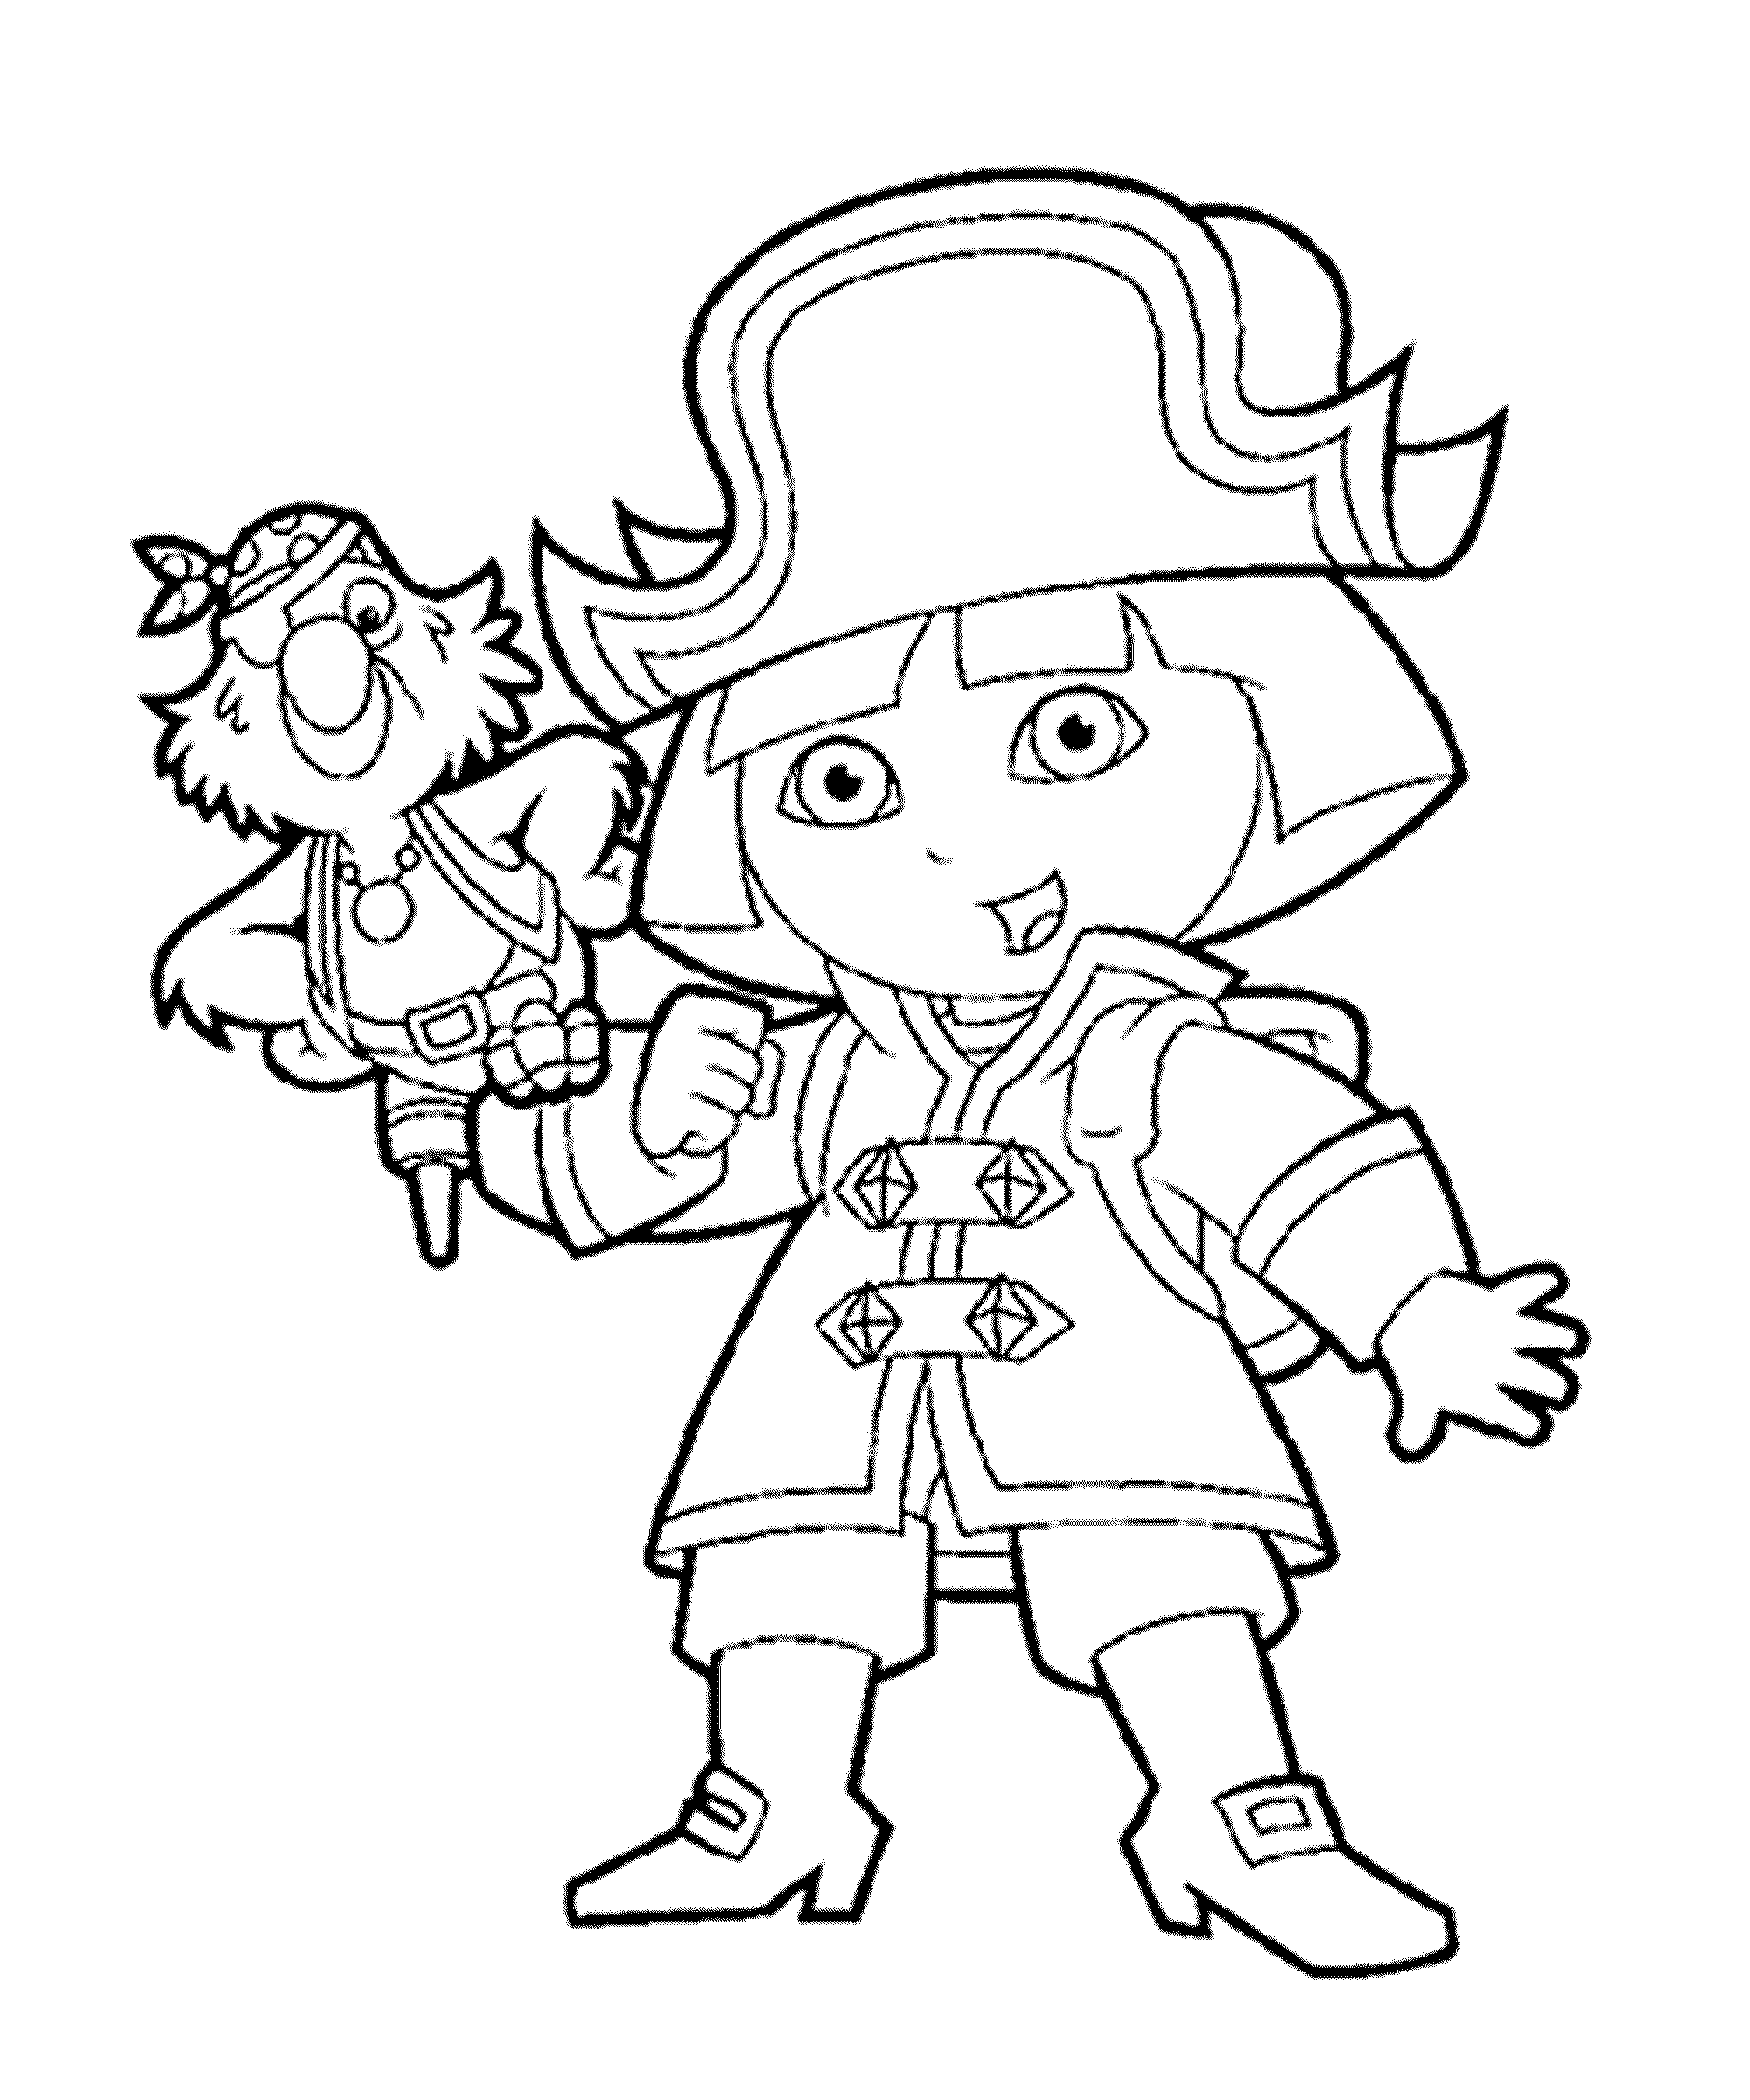 dora color pages print download dora coloring pages to learn new things pages dora color